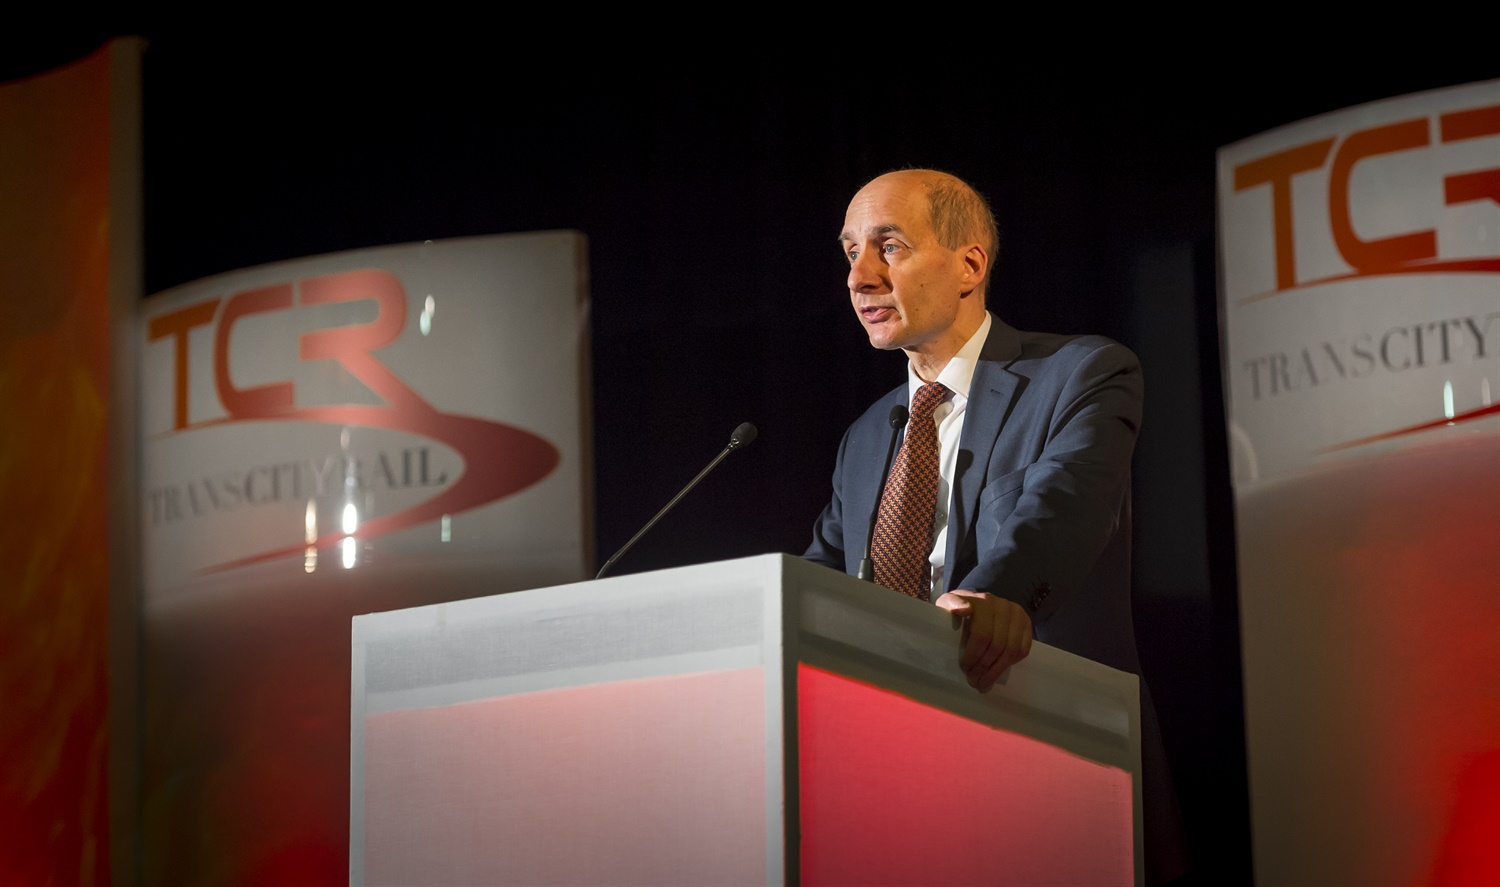 Lord Adonis: Businesses should help pay for HS3 because they will benefit